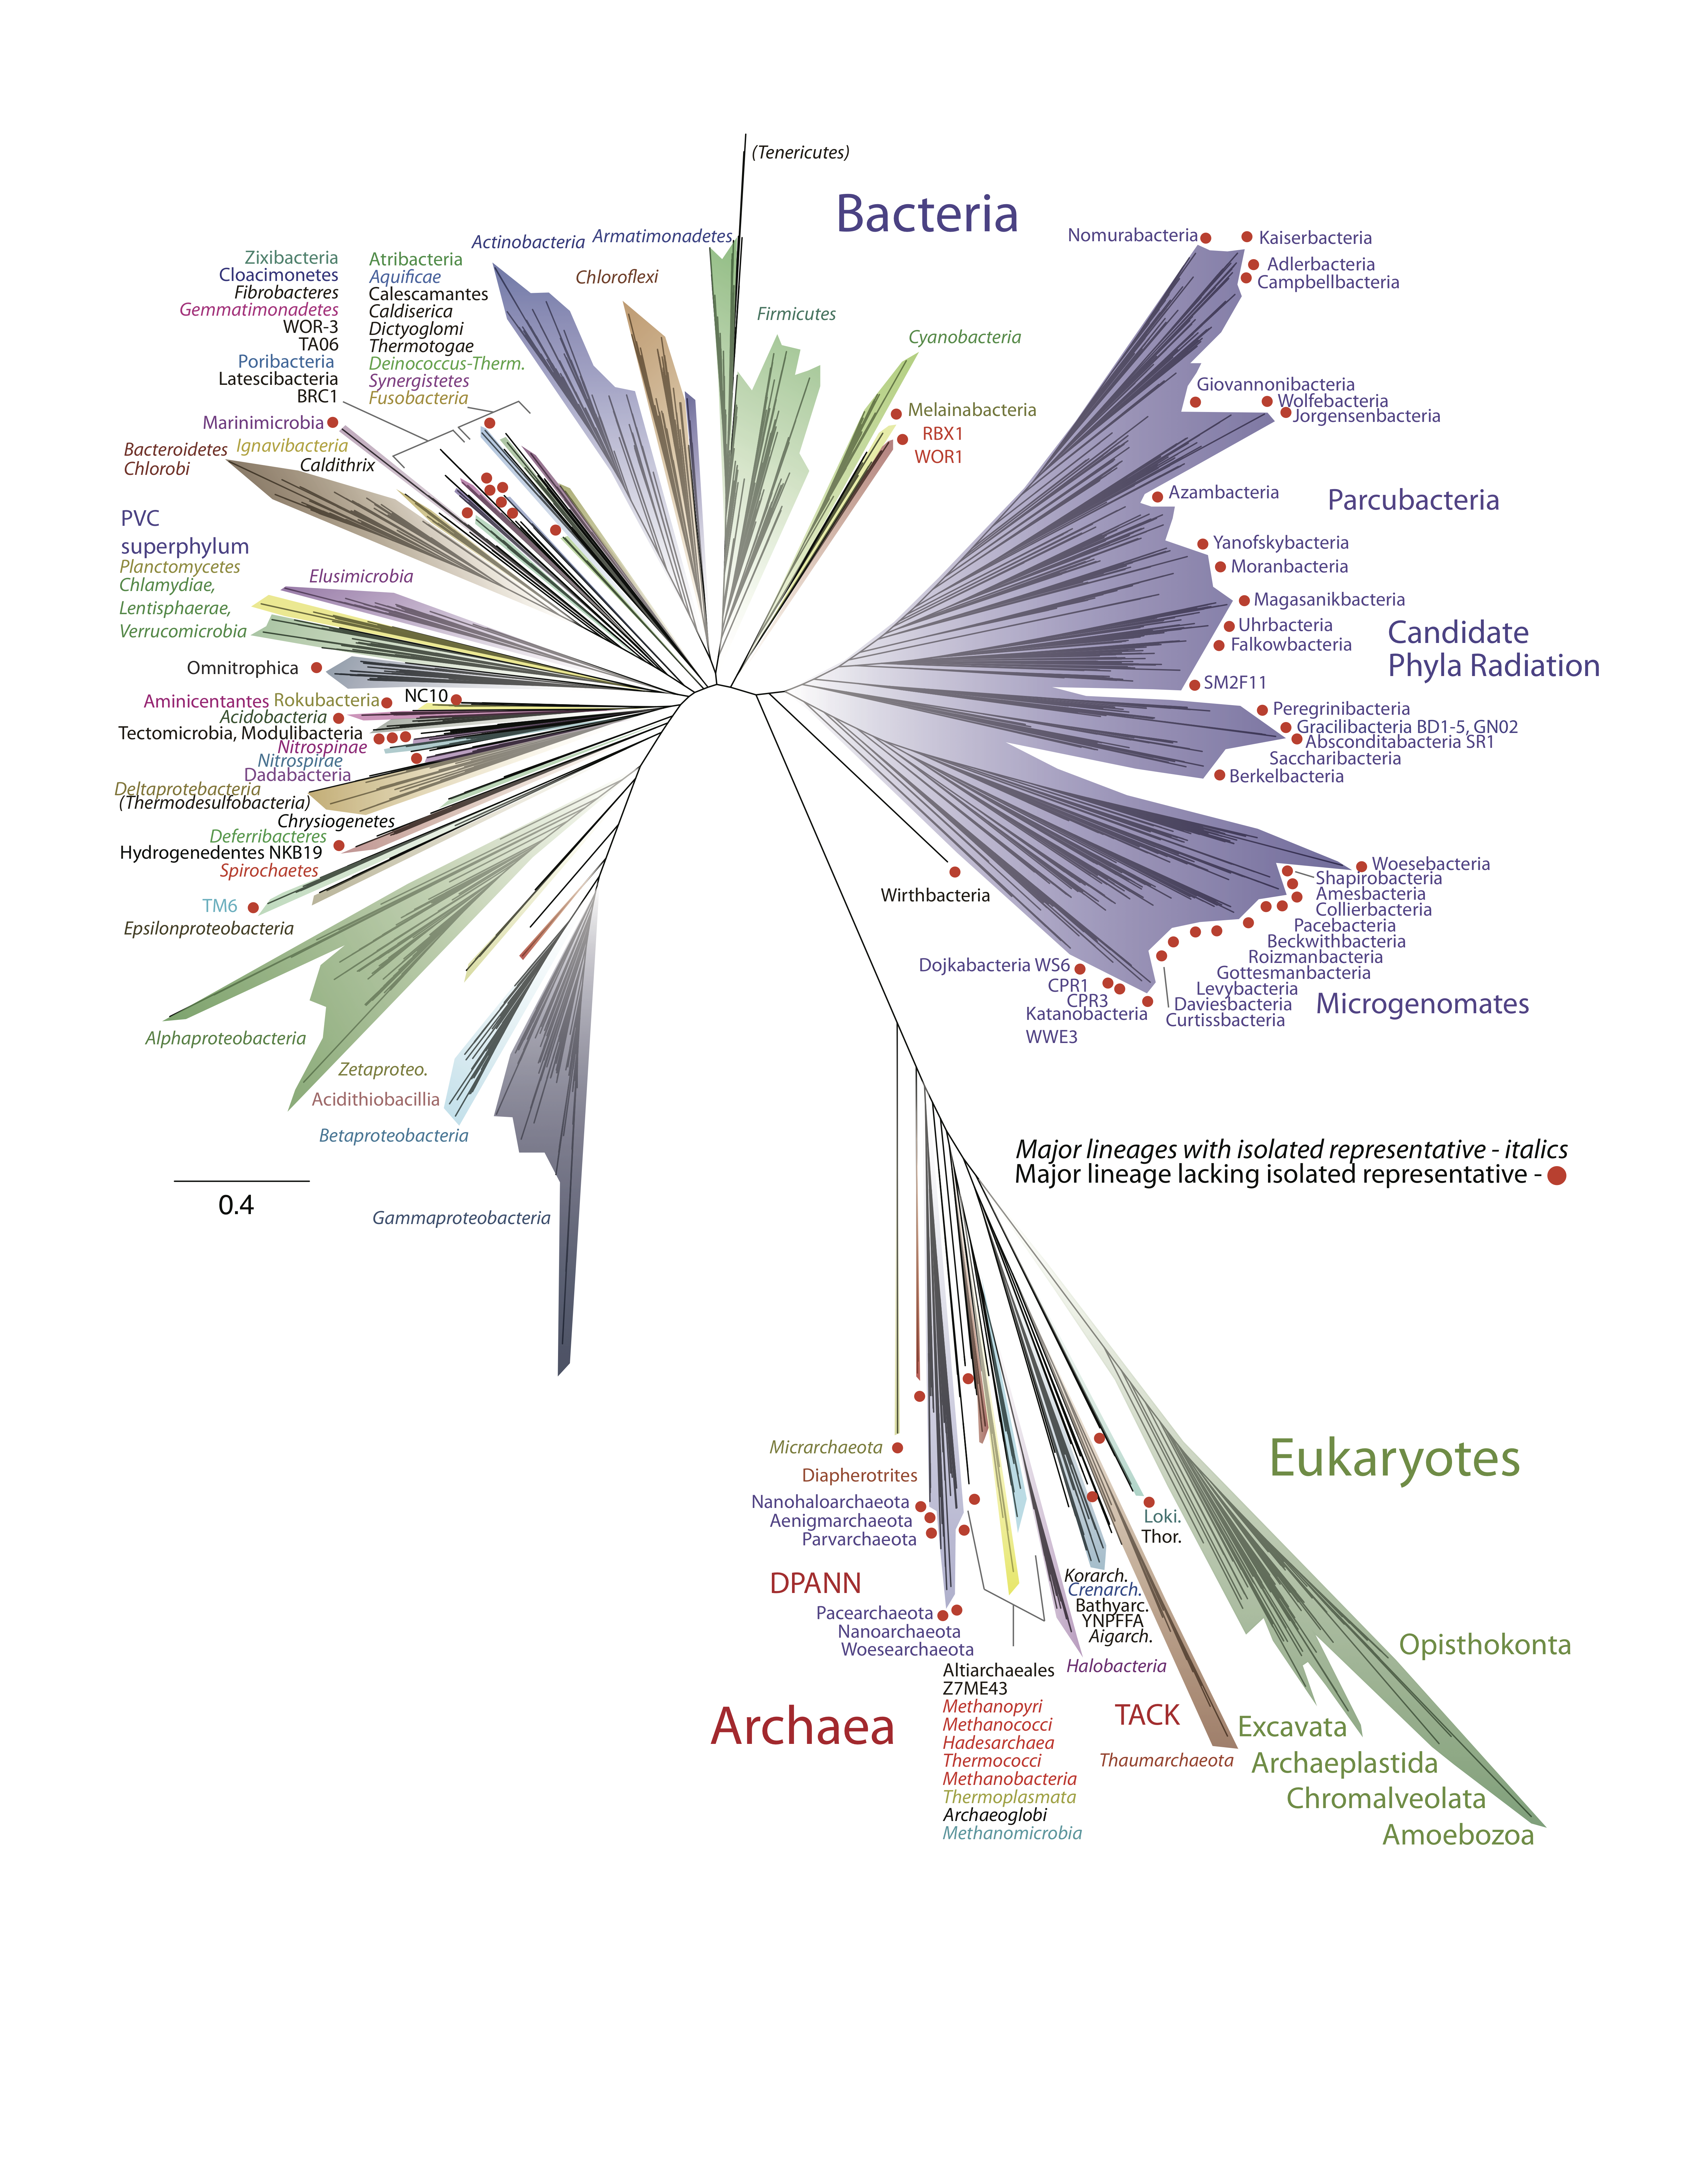 Figure shows An updated tree of life with Archaea at the bottom, along with the Eukaryotes, which emerge from within the archaea.